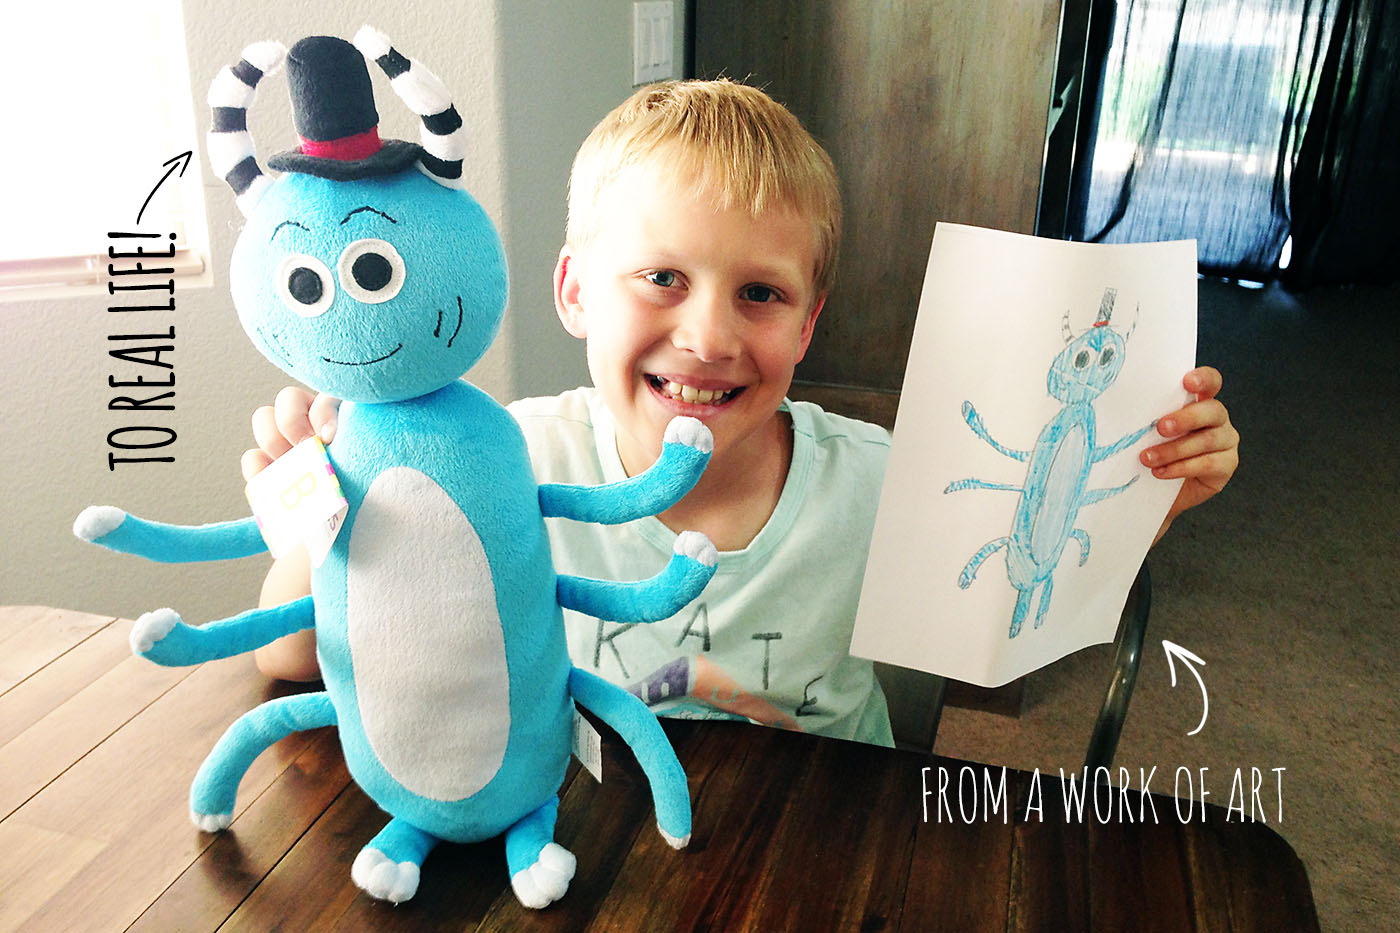 Children Create a Fantastic Line of Toys with His Drawings